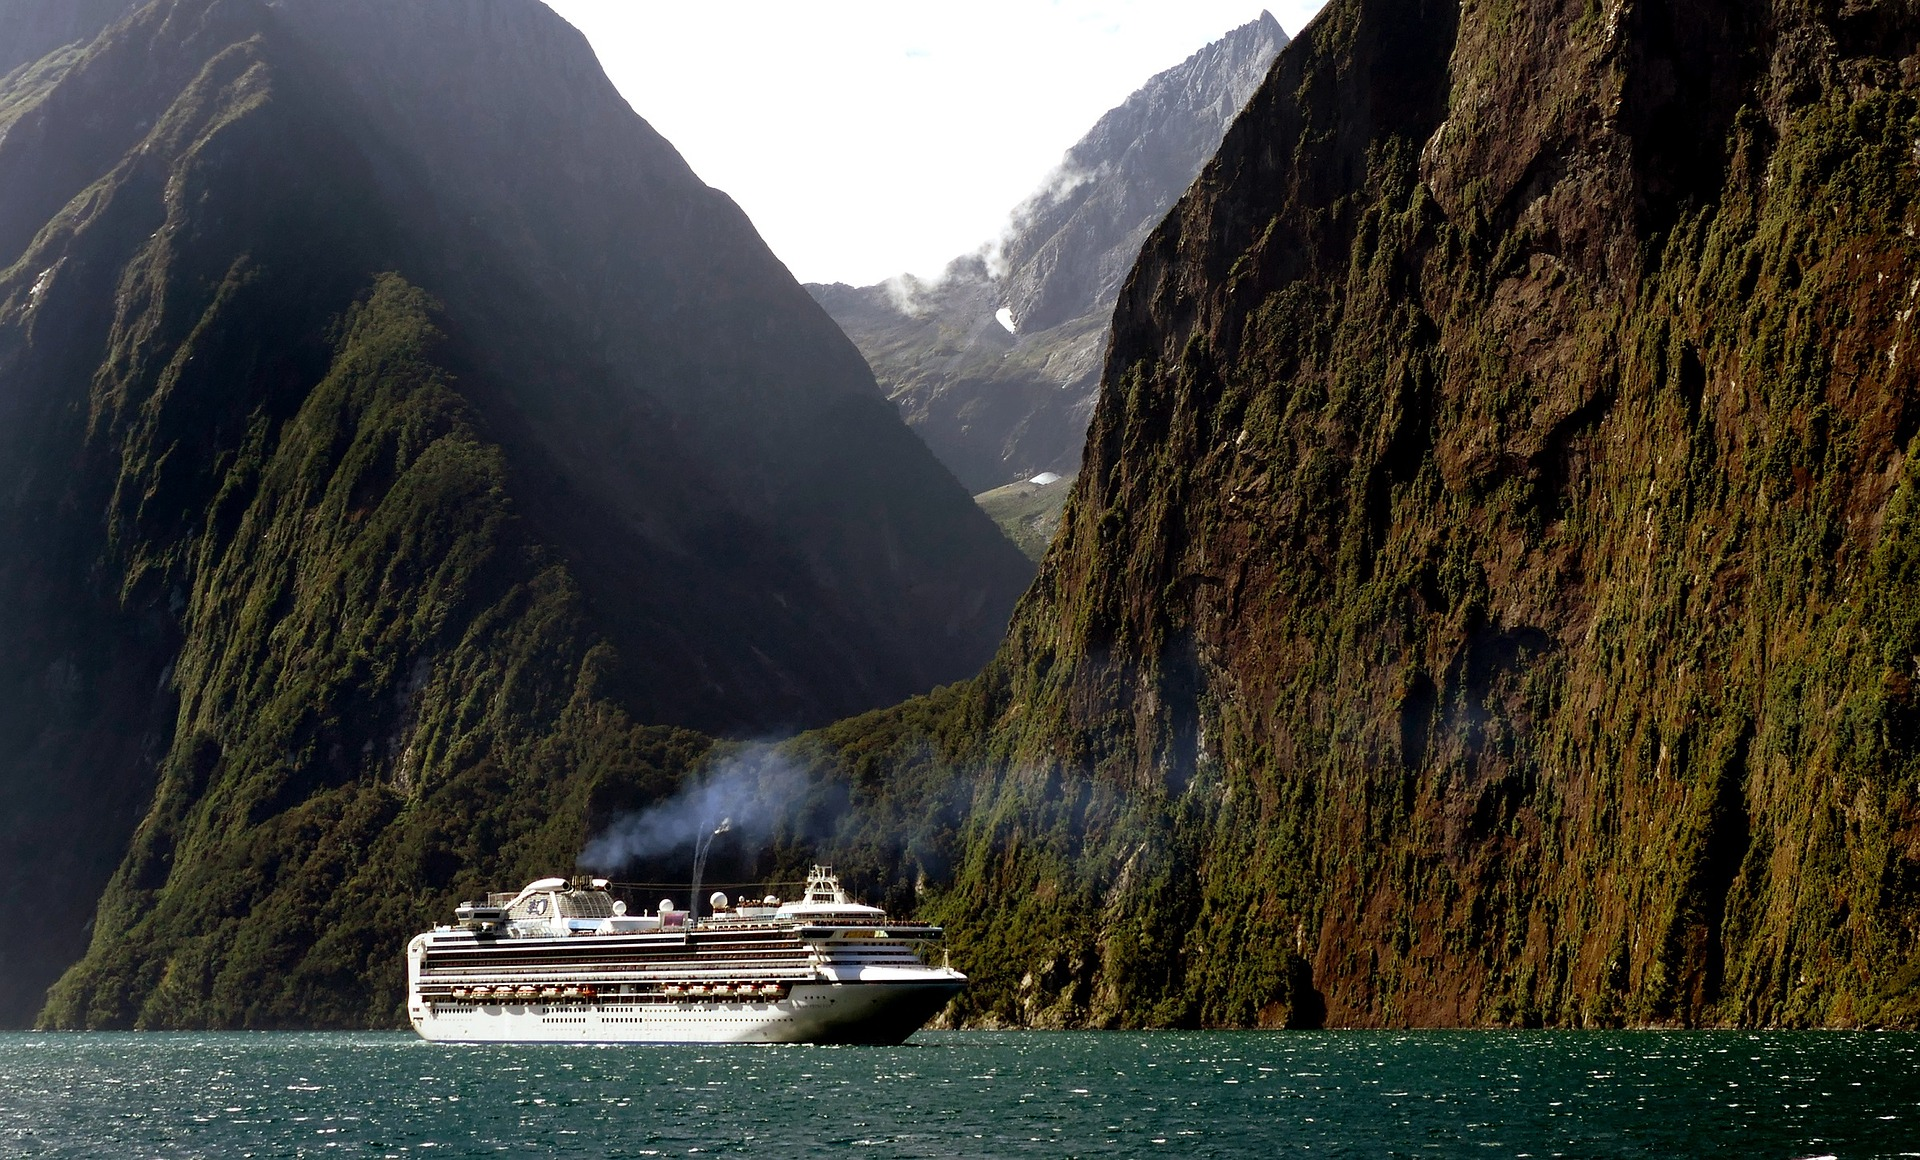 Cruise ship near mountains